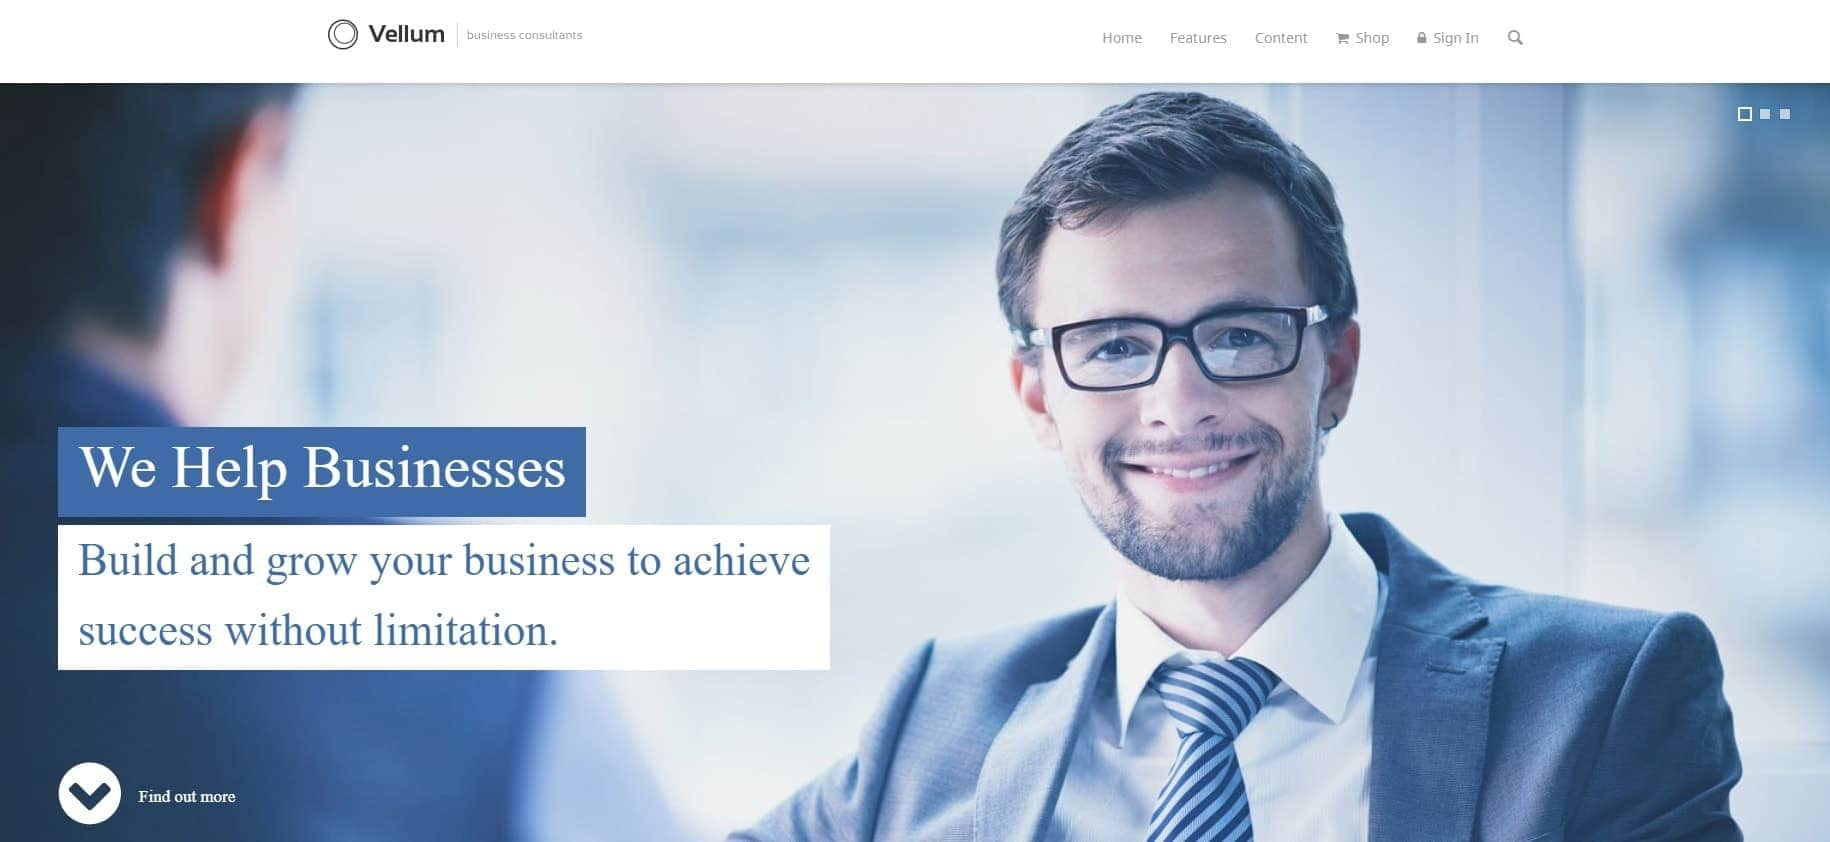 vellum-business-wordpress-theme